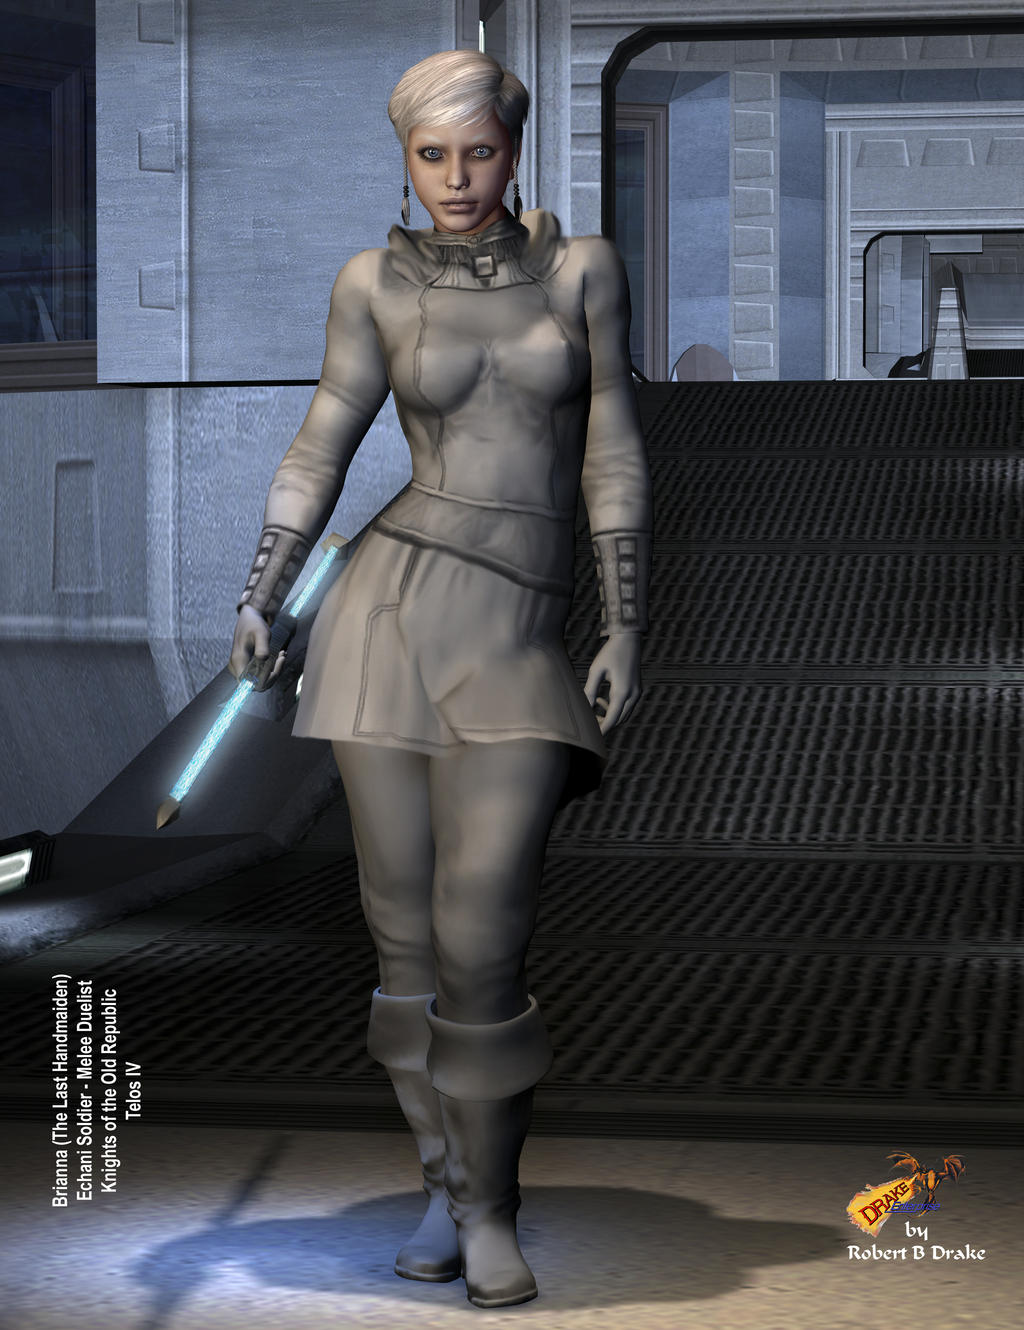 Handmaidens boobs kotor sexual pics